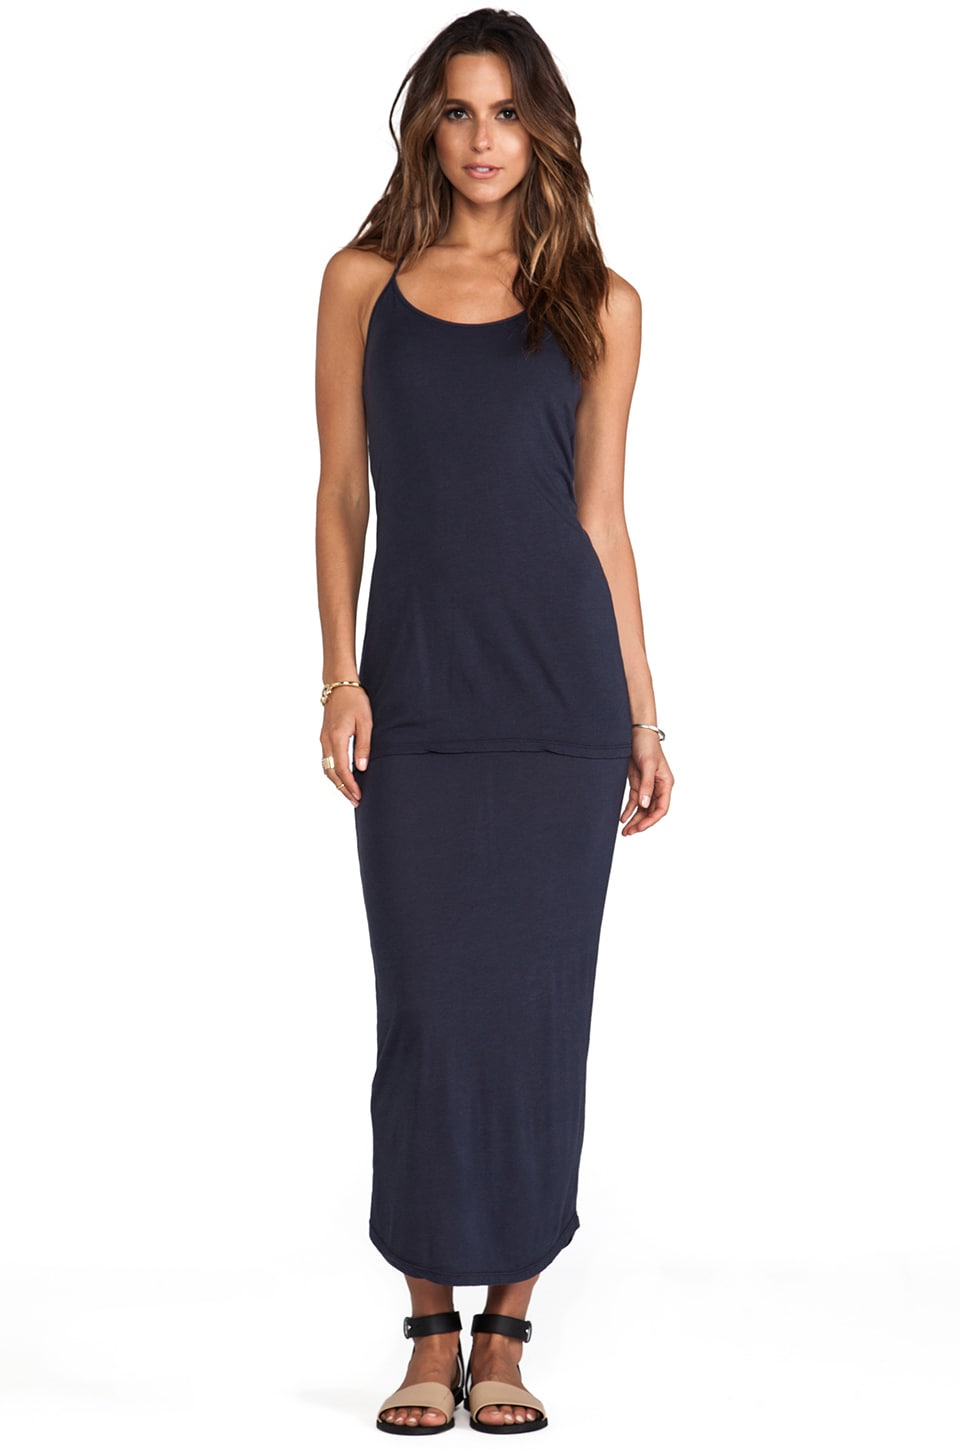 MONROW Basics Racer Dress in Neptune